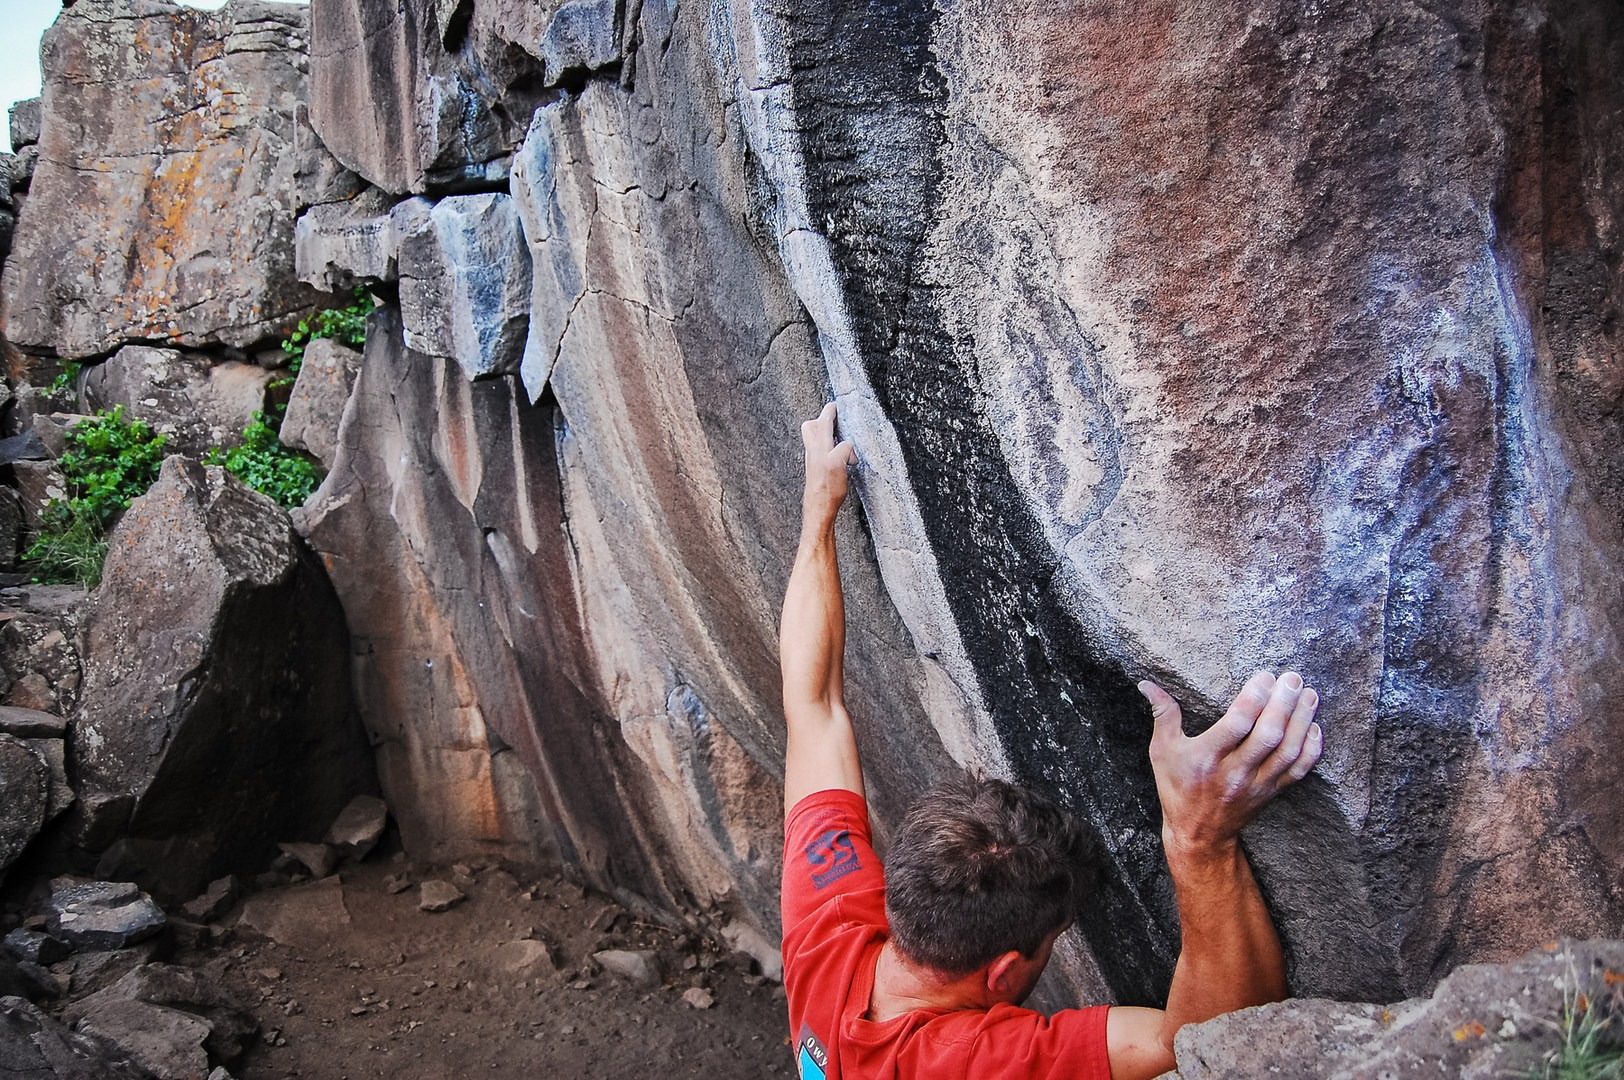 How To Get Into Rock Climbing And Where To Start